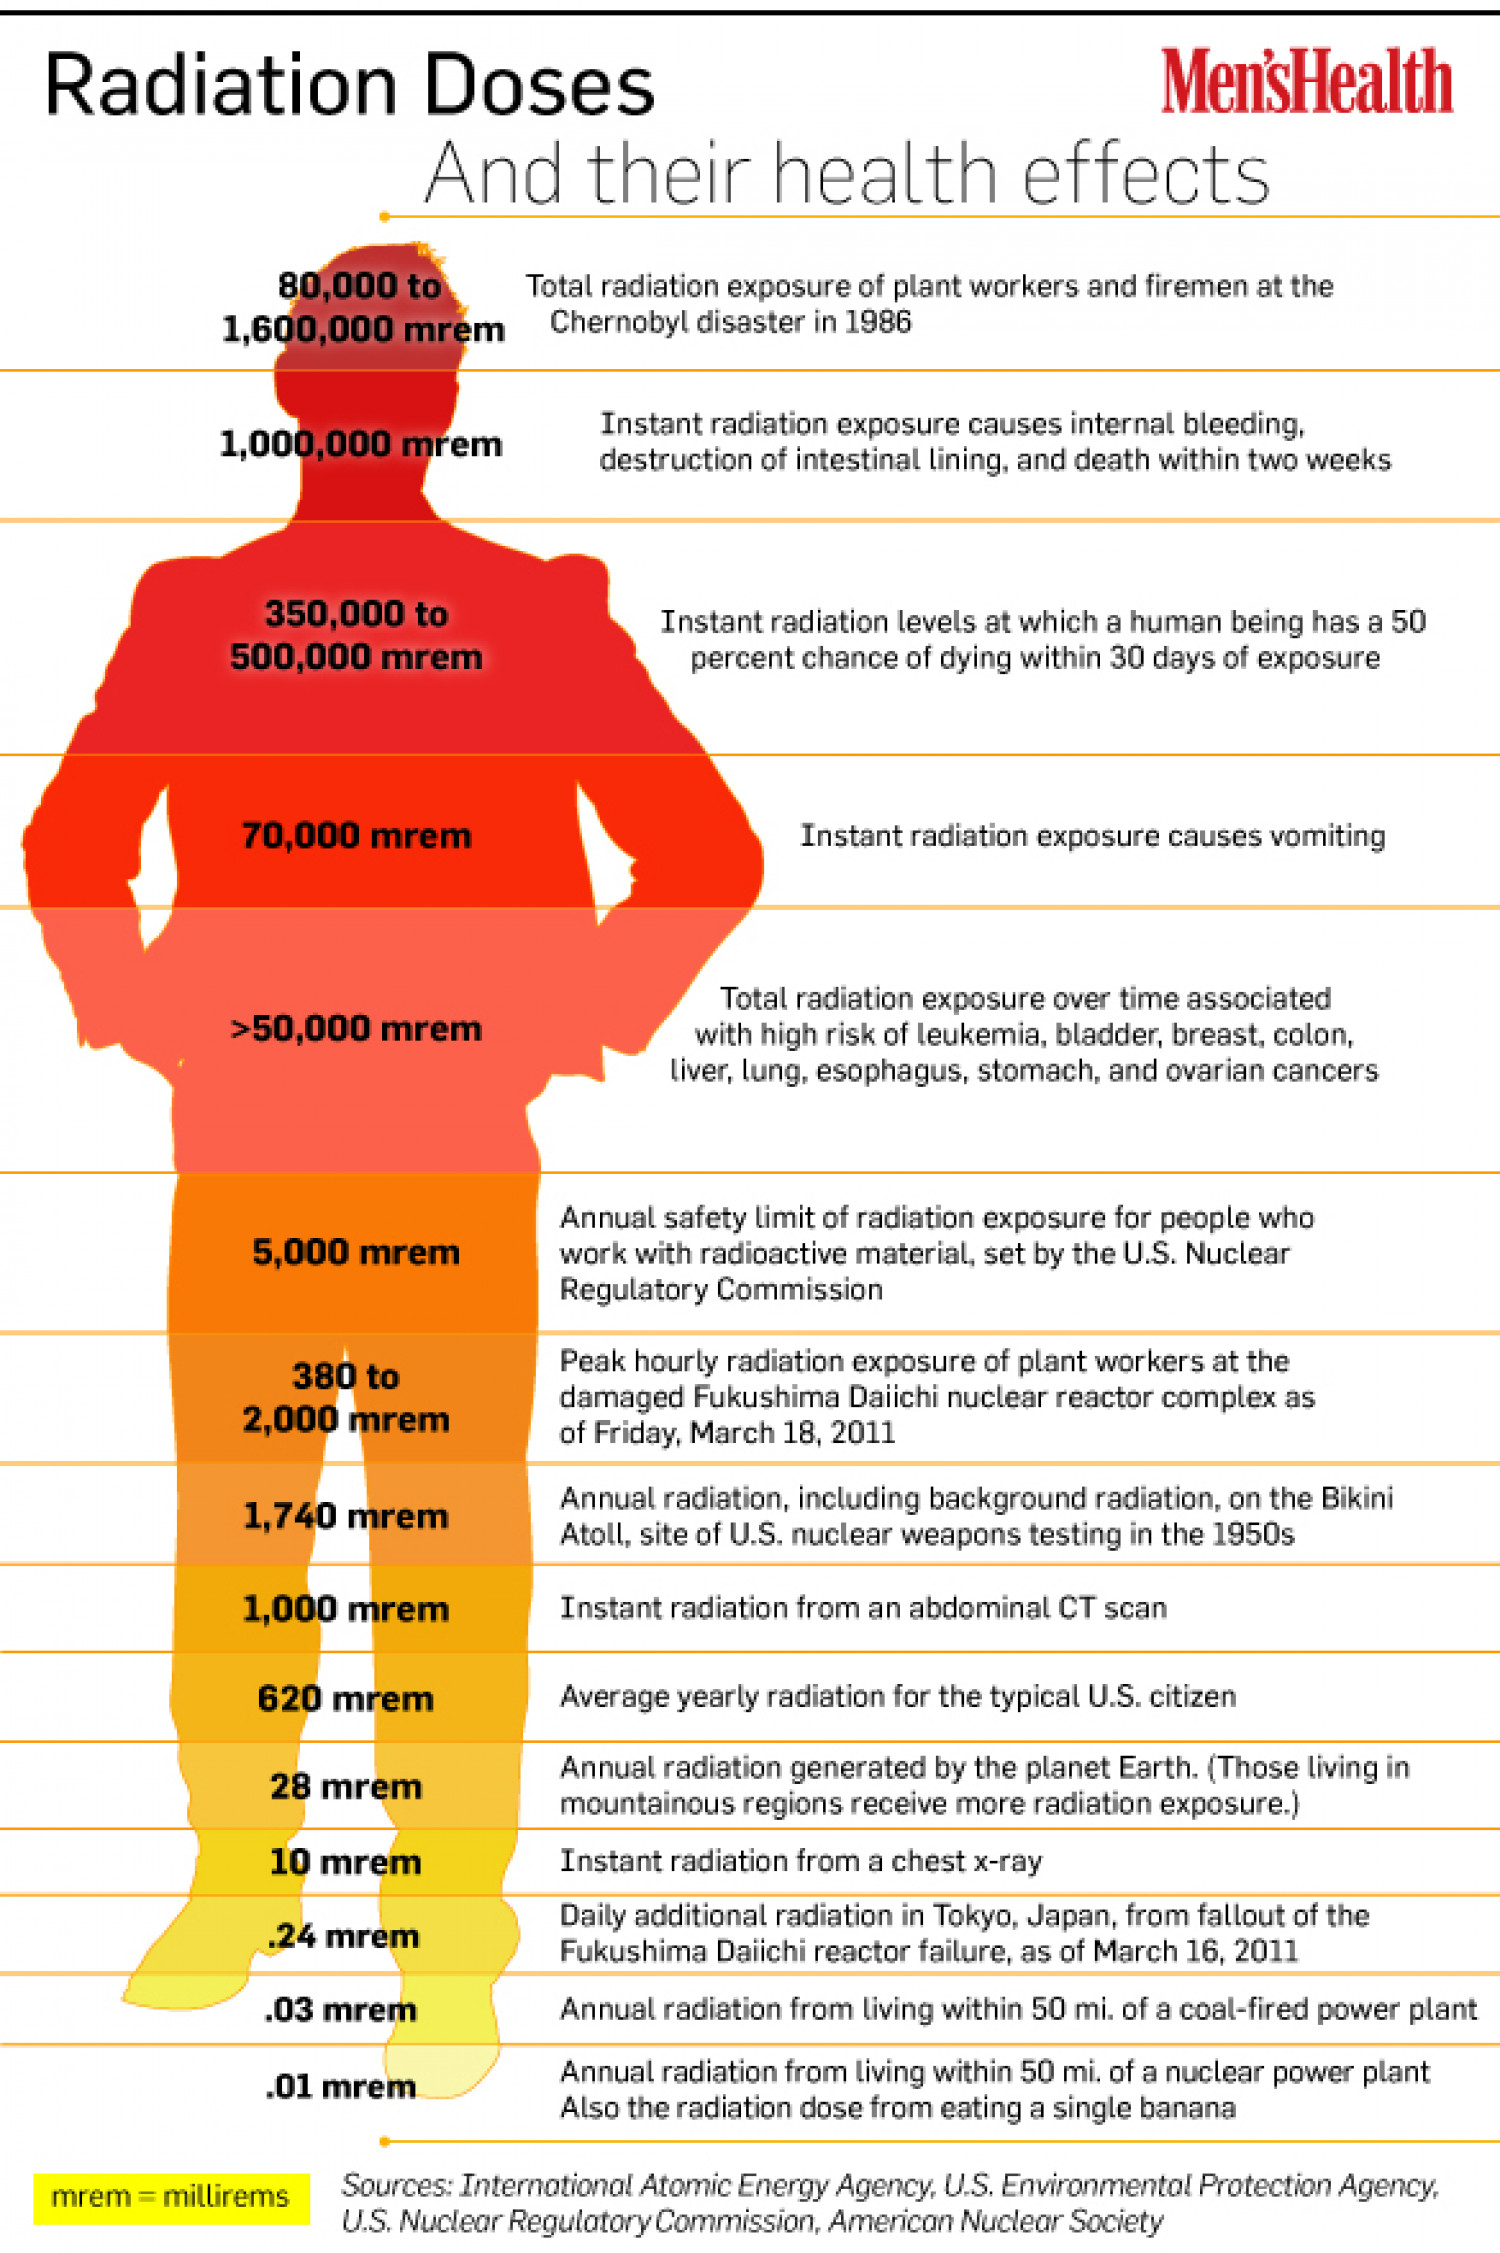 Radiation Doses And Their Health Effects